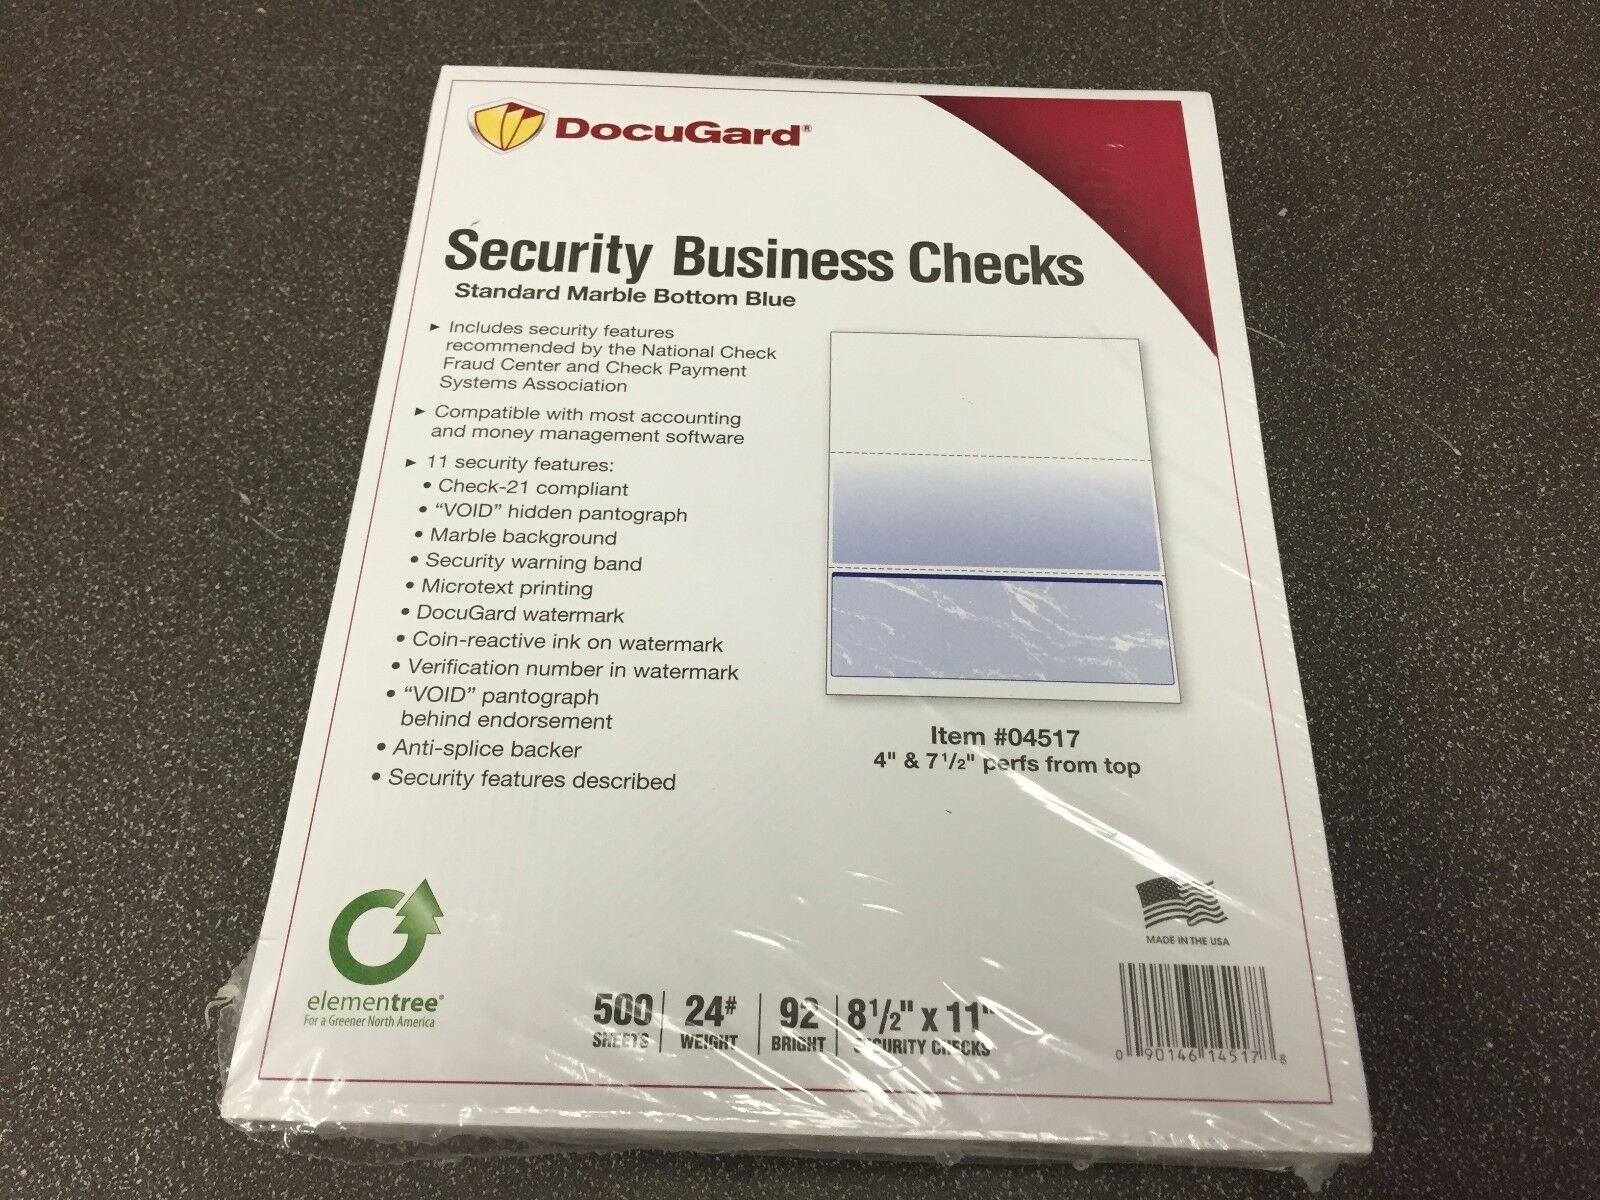 Docugard Security Business Checks set Of 500 #04517 Marble Bottom Blue